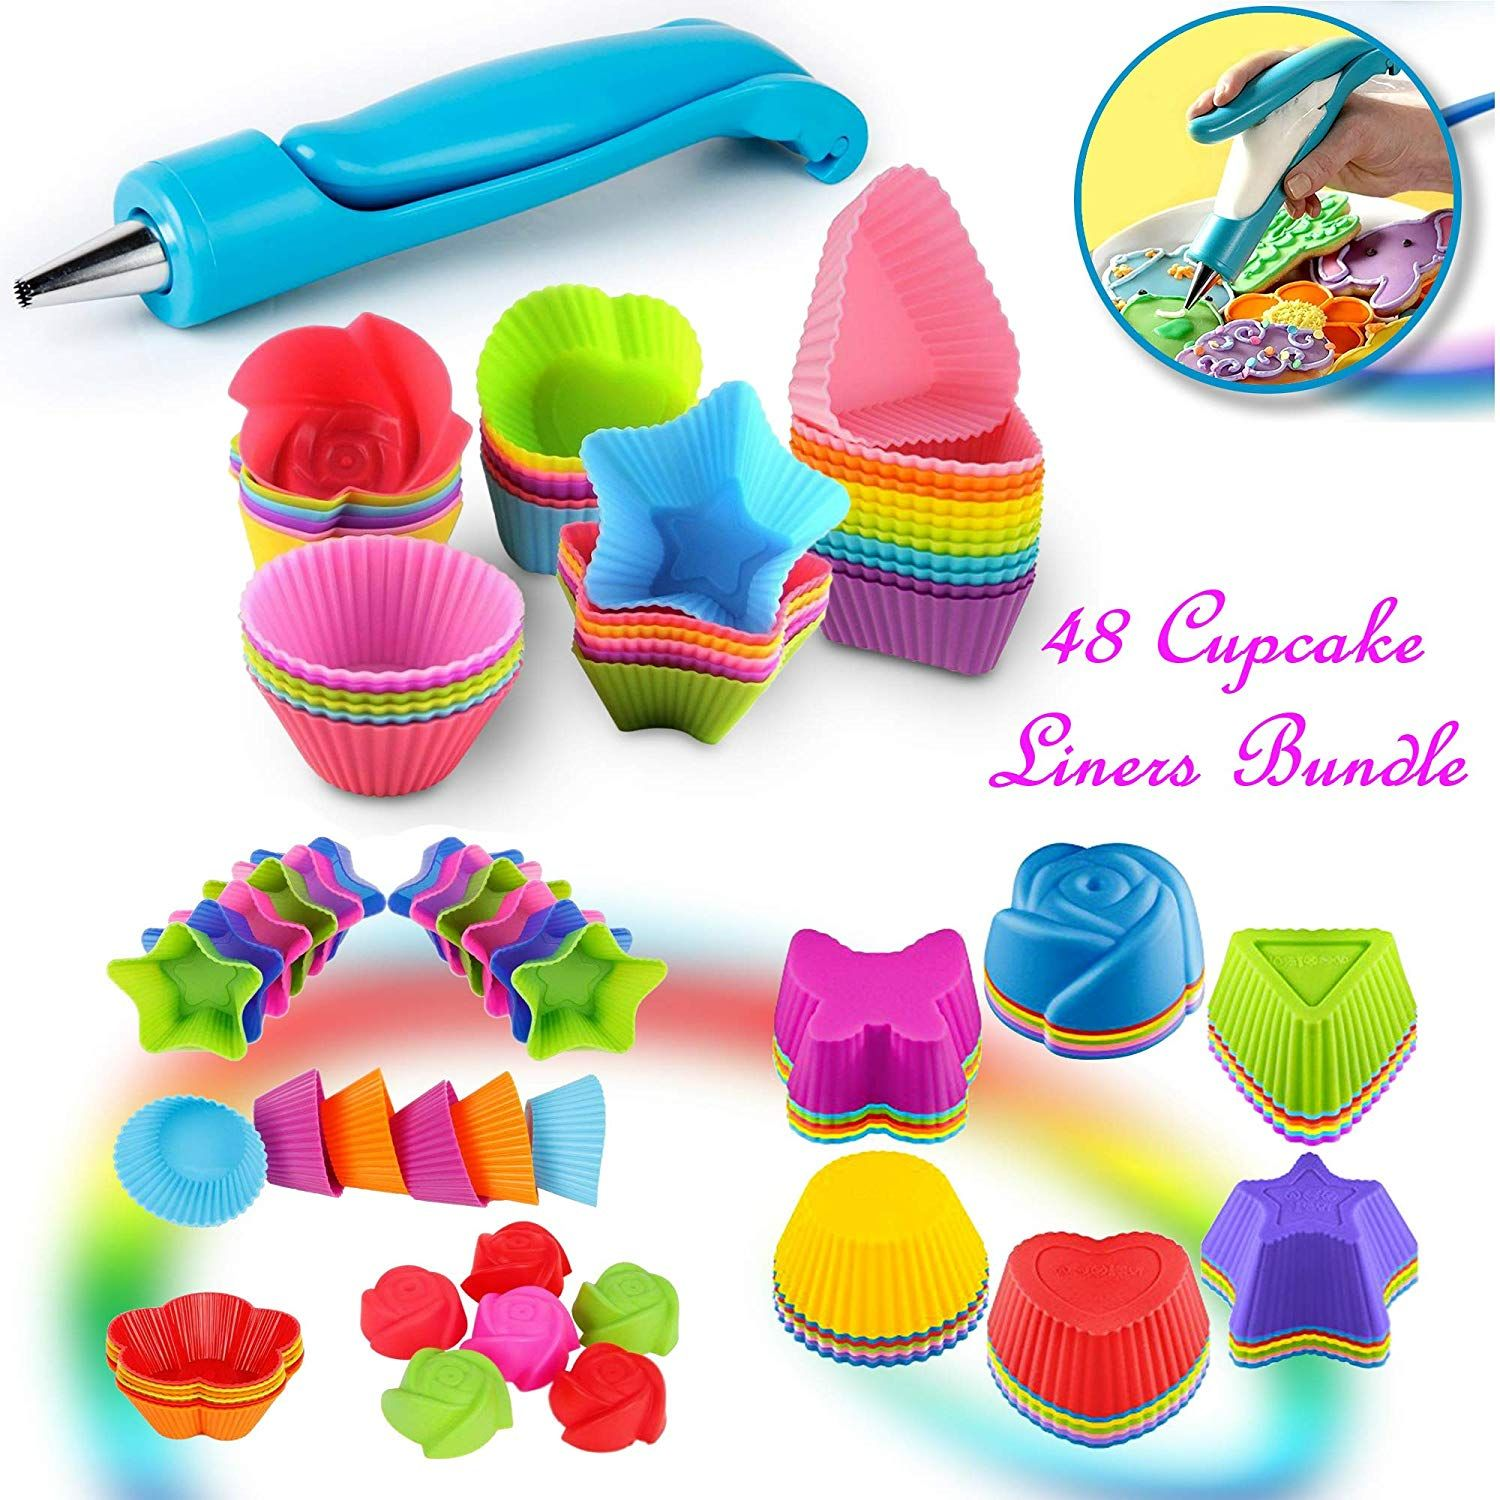 Home   WLFS   Baking cups, Cake mold, Muffin cups